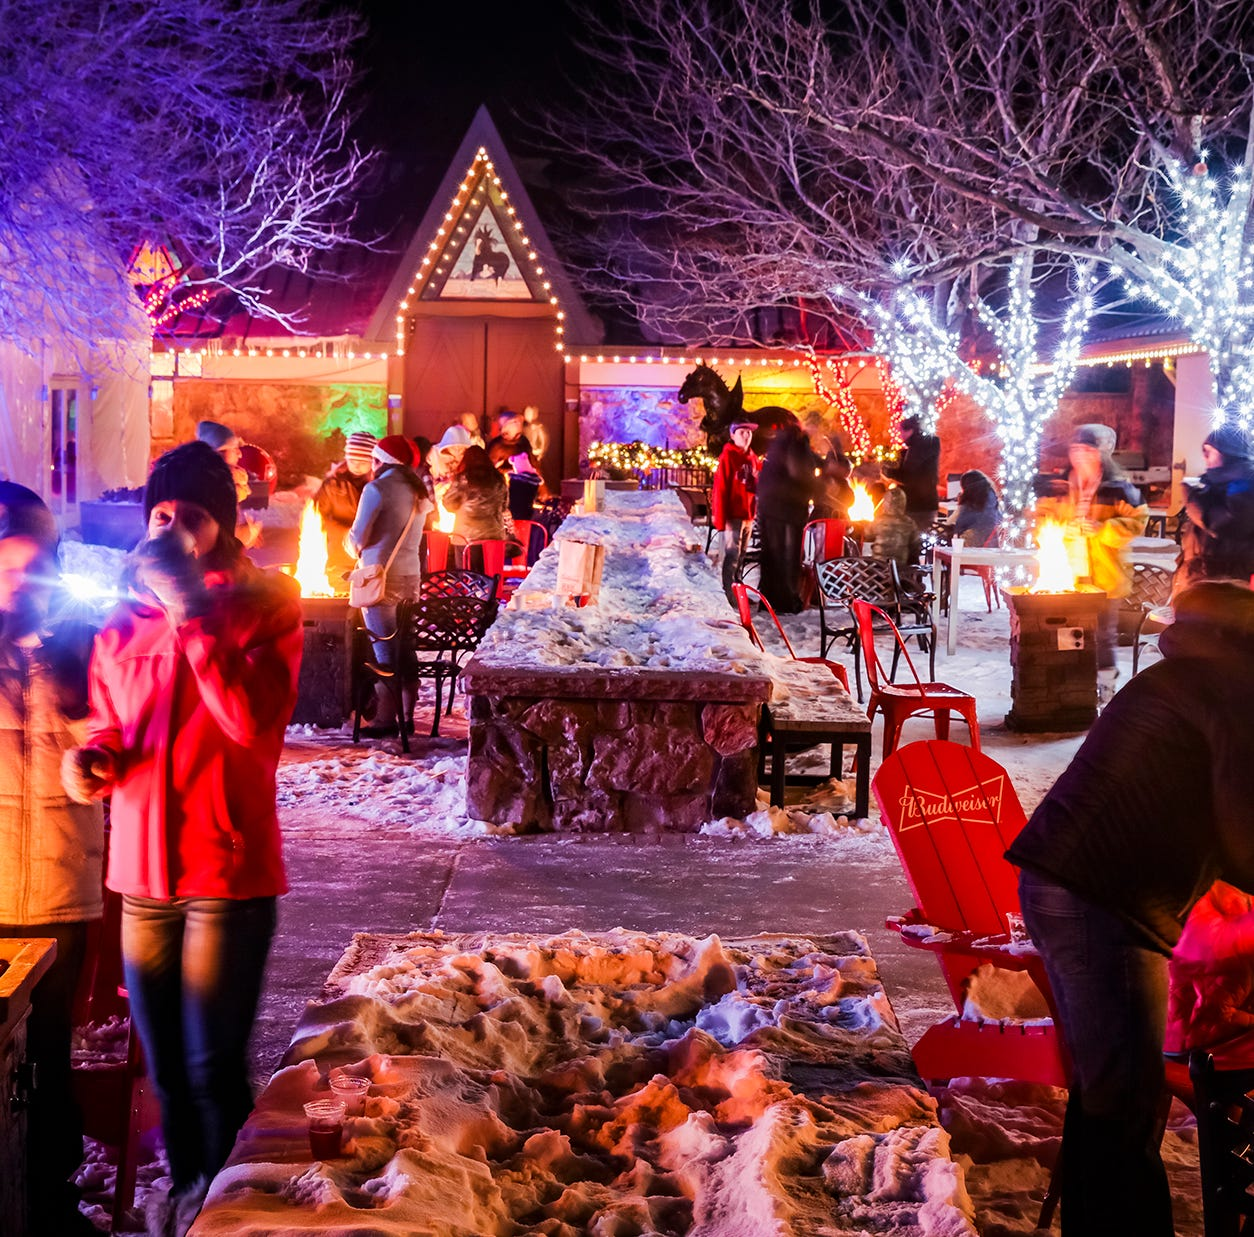 Where to find the best Christmas lights in Fort Collins